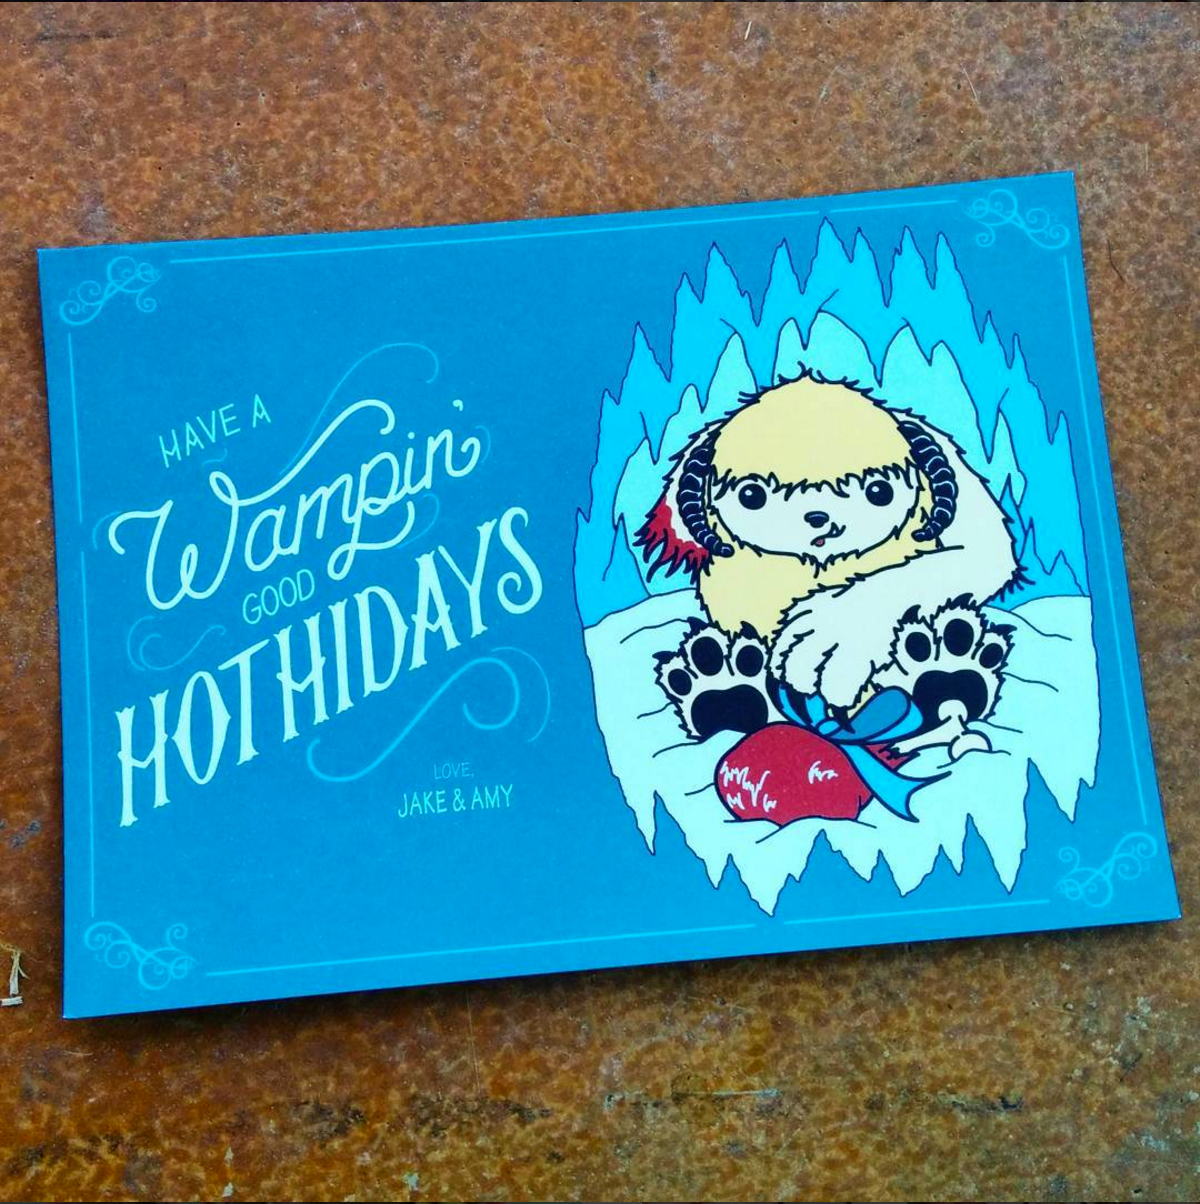 wampin hothidays nerdy hand lettered holiday cards